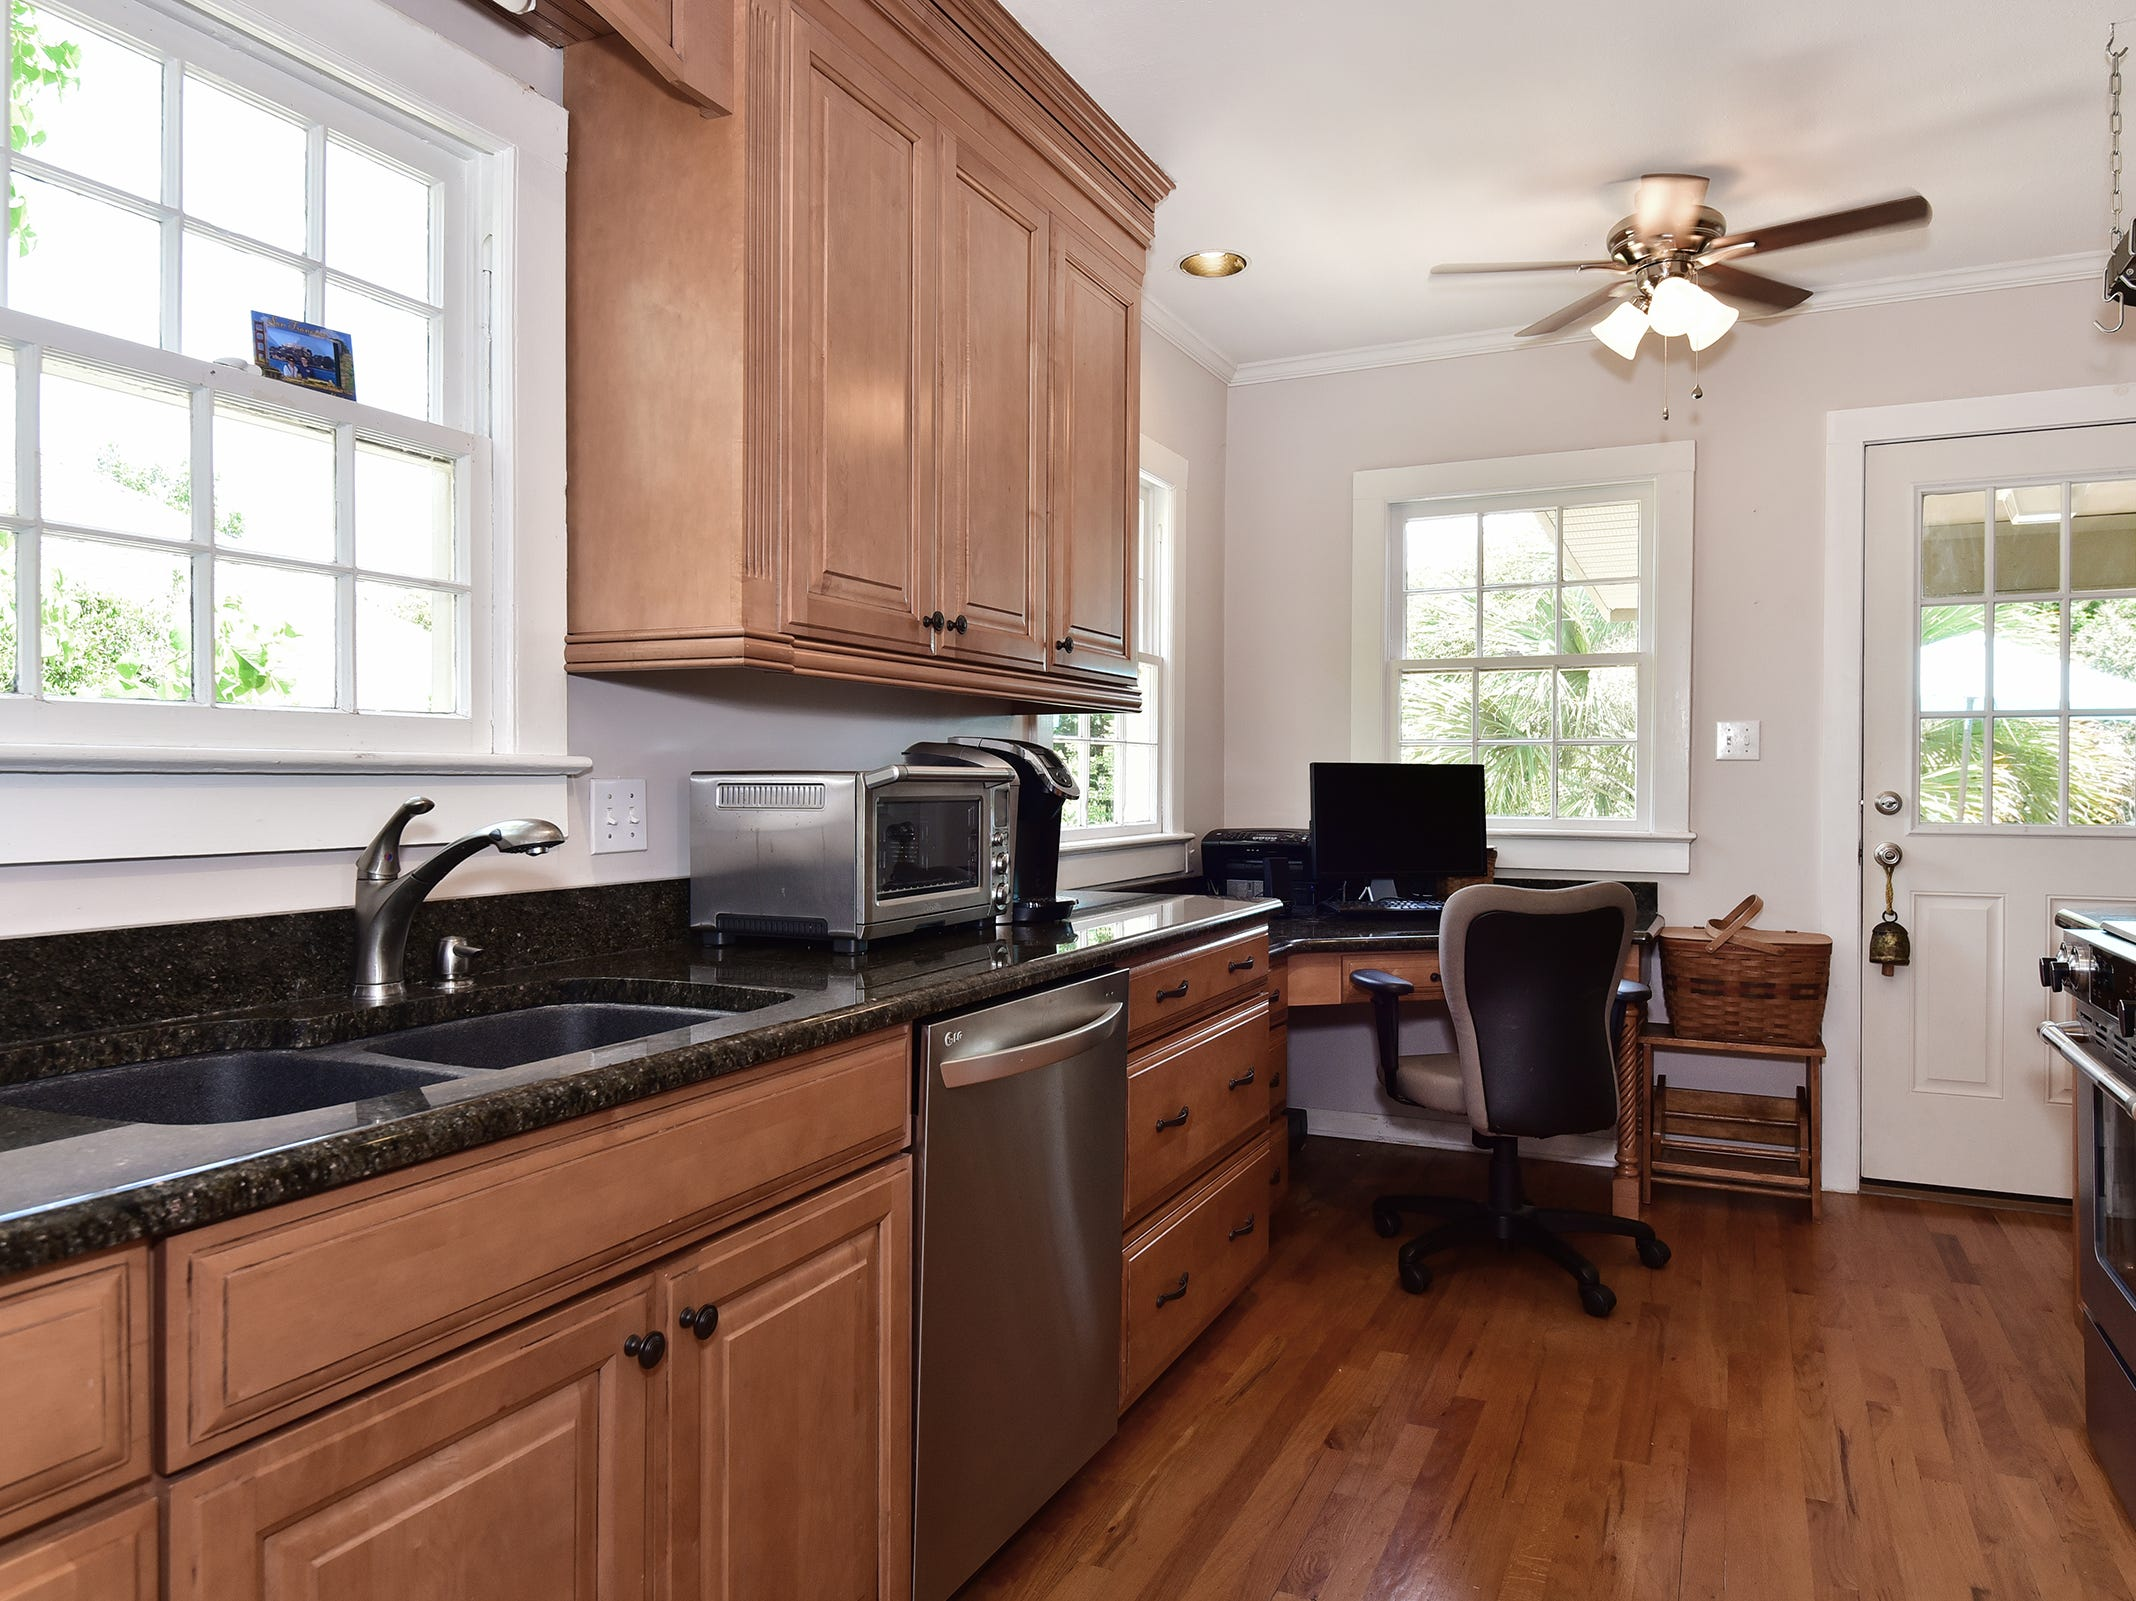 1812 Magnolia Avenue, natural light illuminates the kitchen.